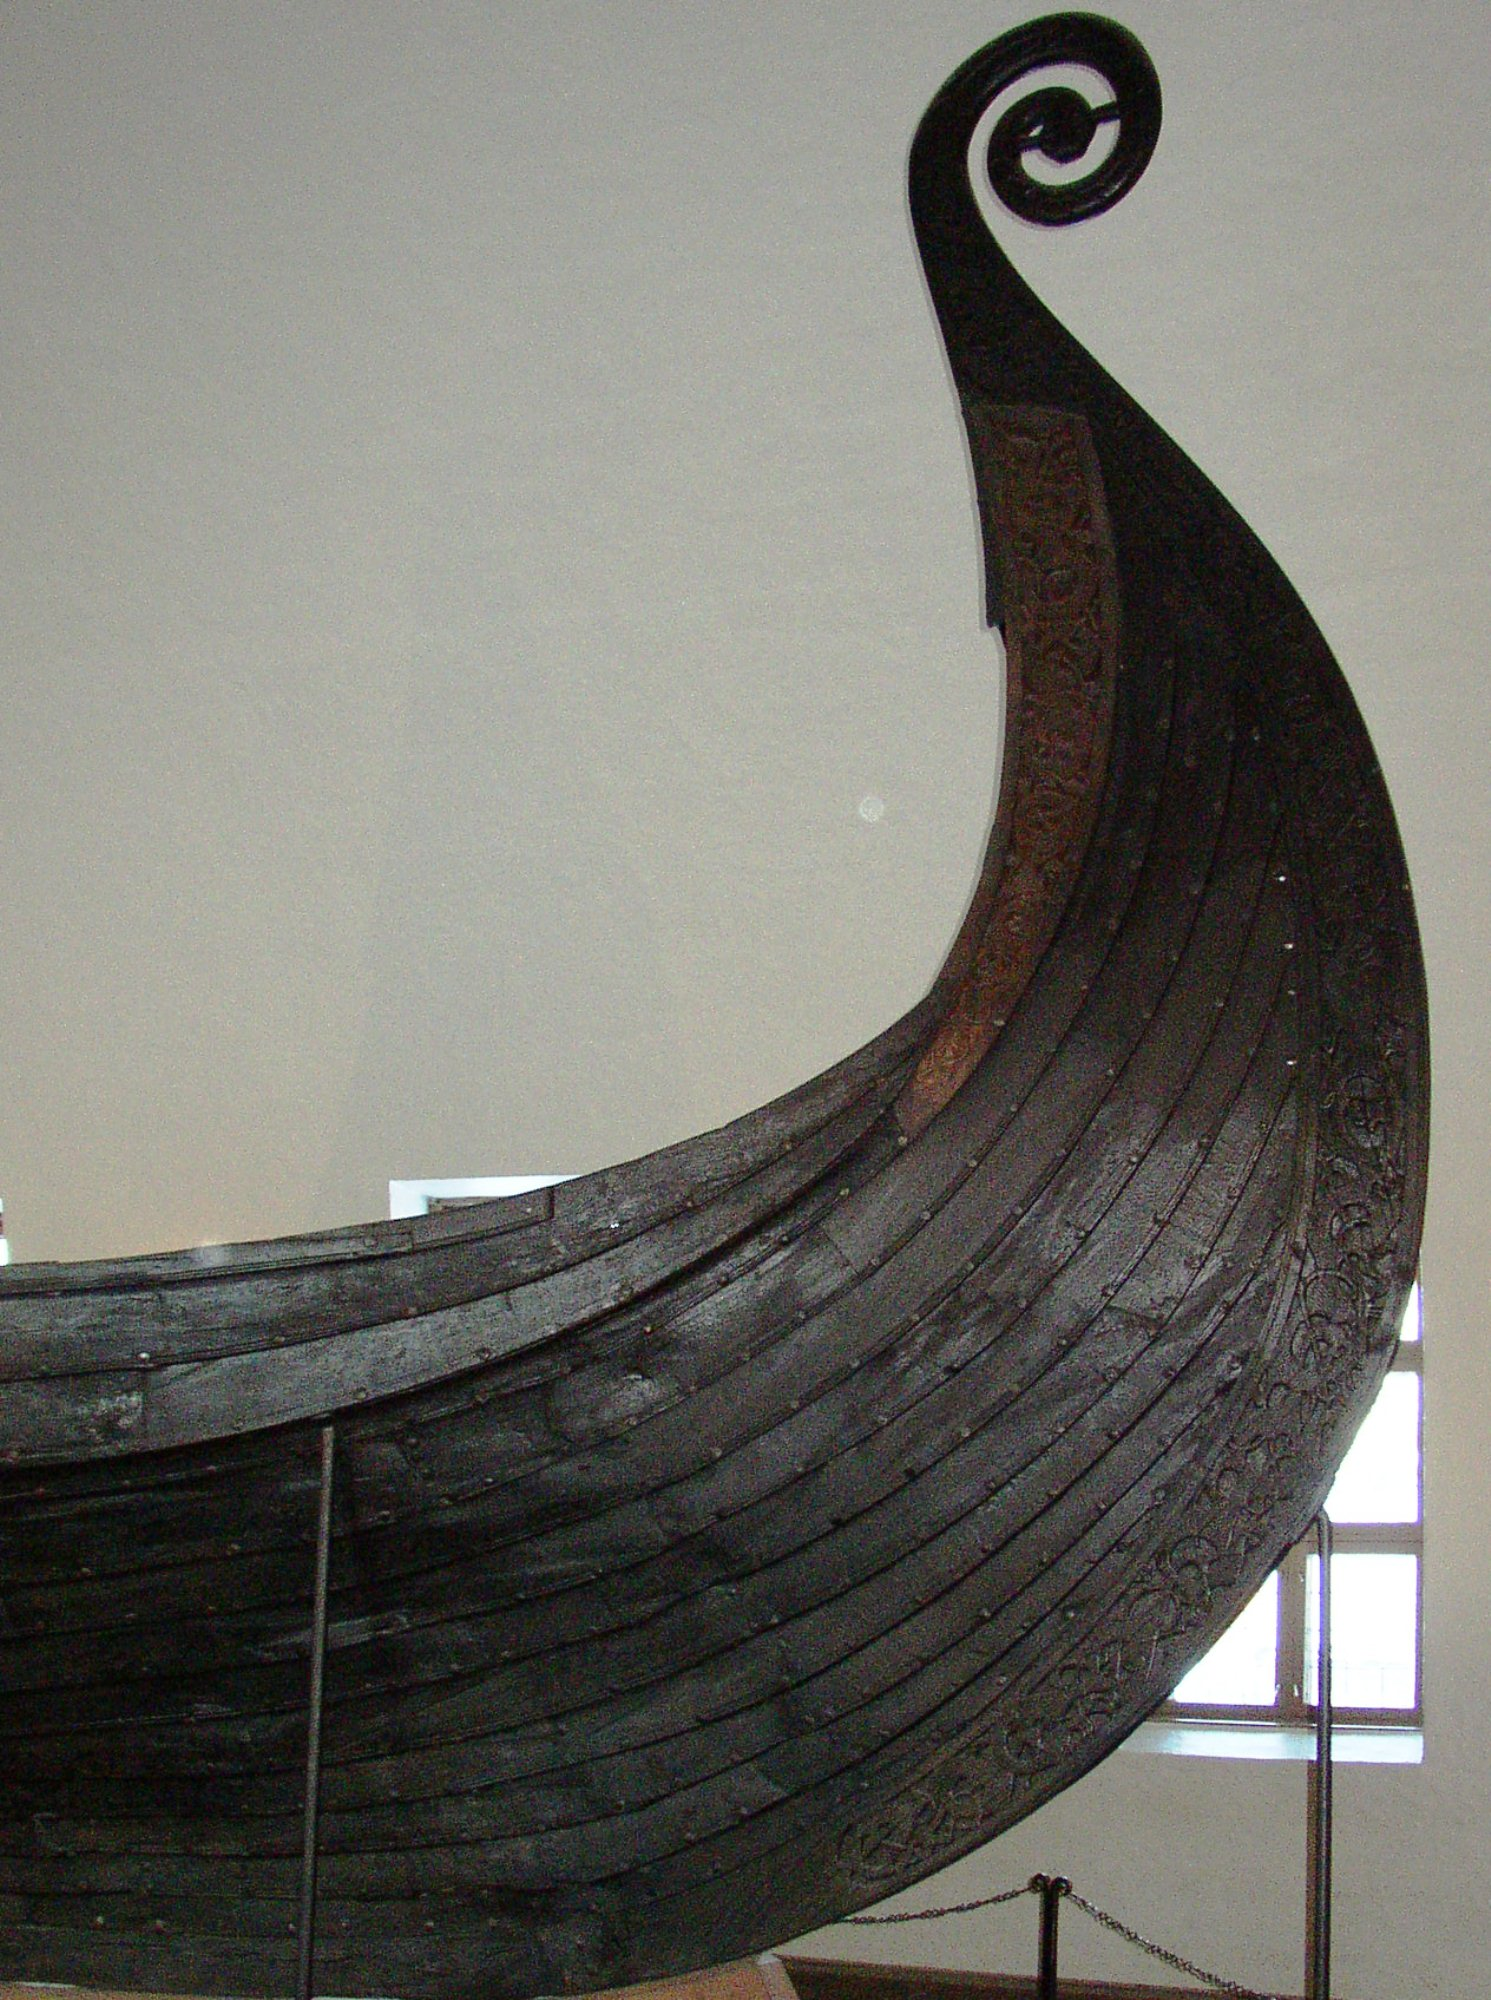 Thr Viking Ship Museum